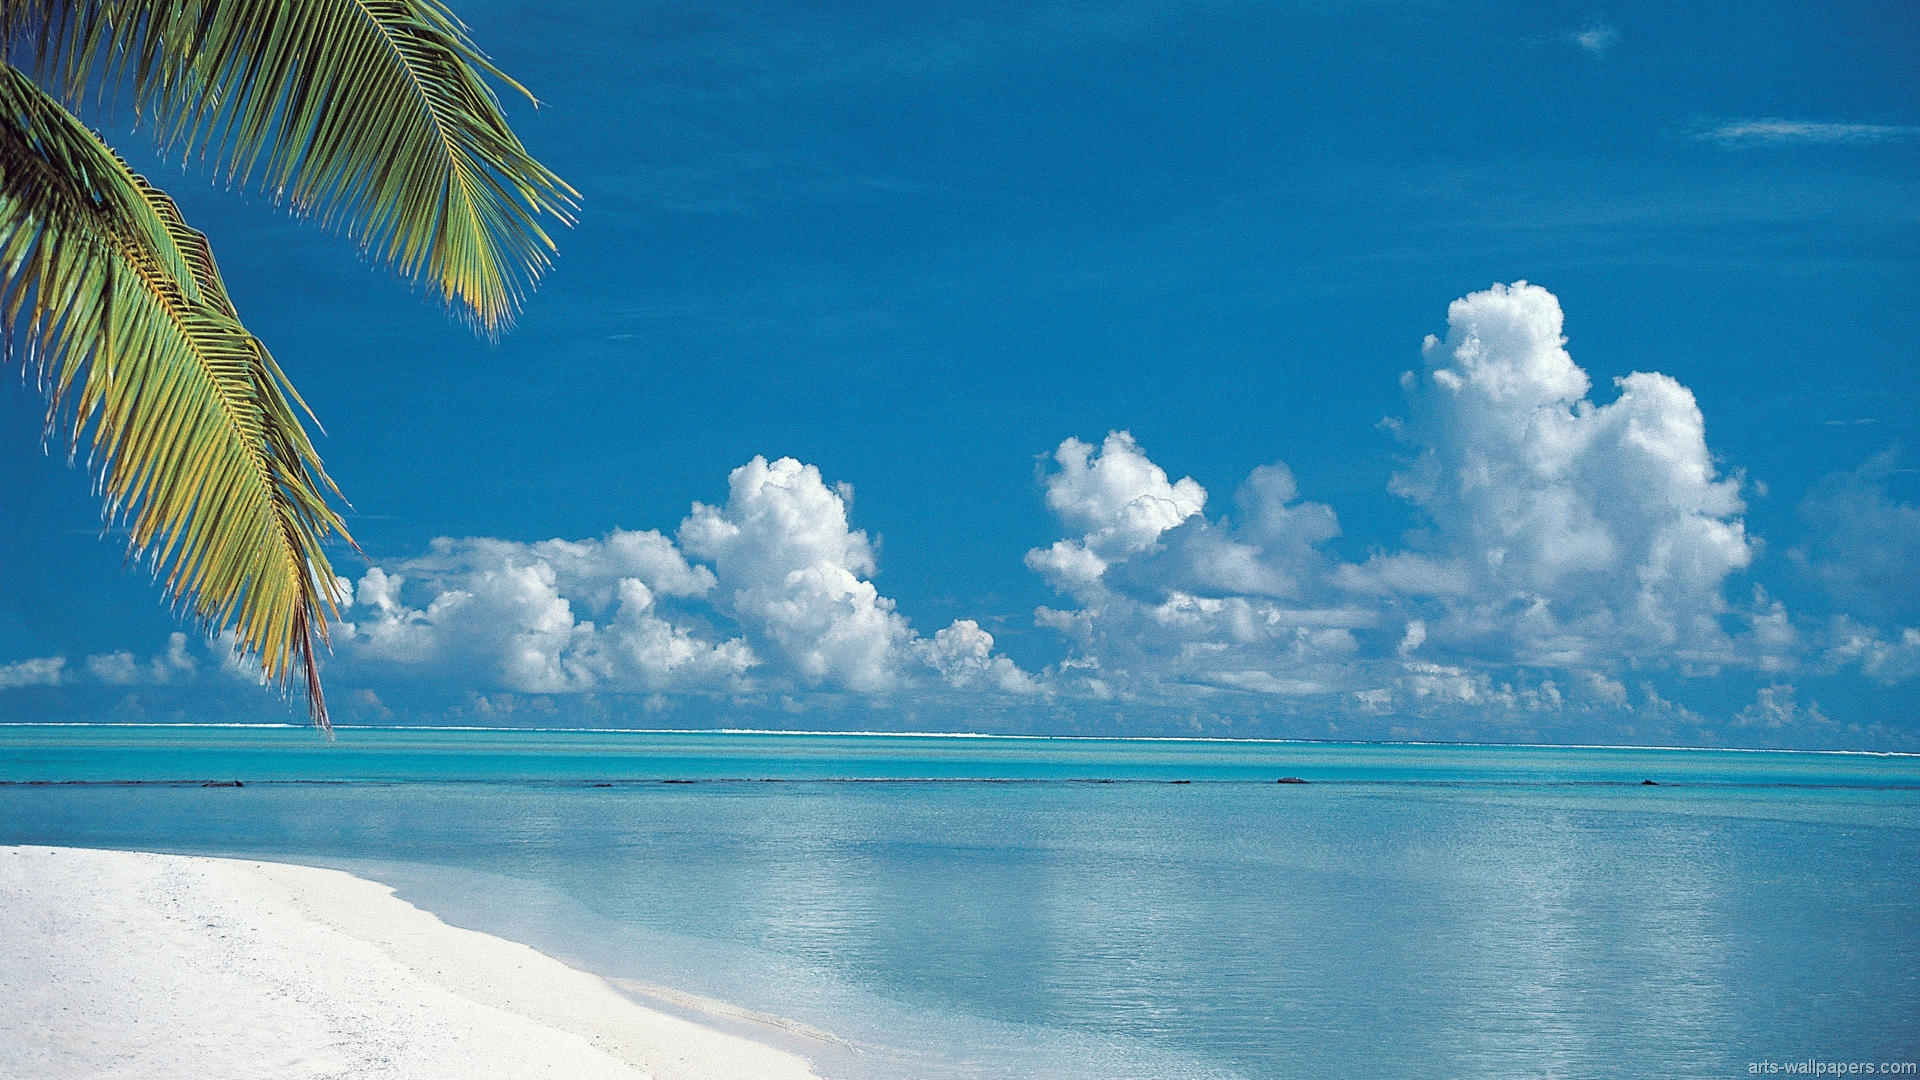 Hd Tropical Island Beach Paradise Wallpapers And Backgrounds: Paradise Wallpaper